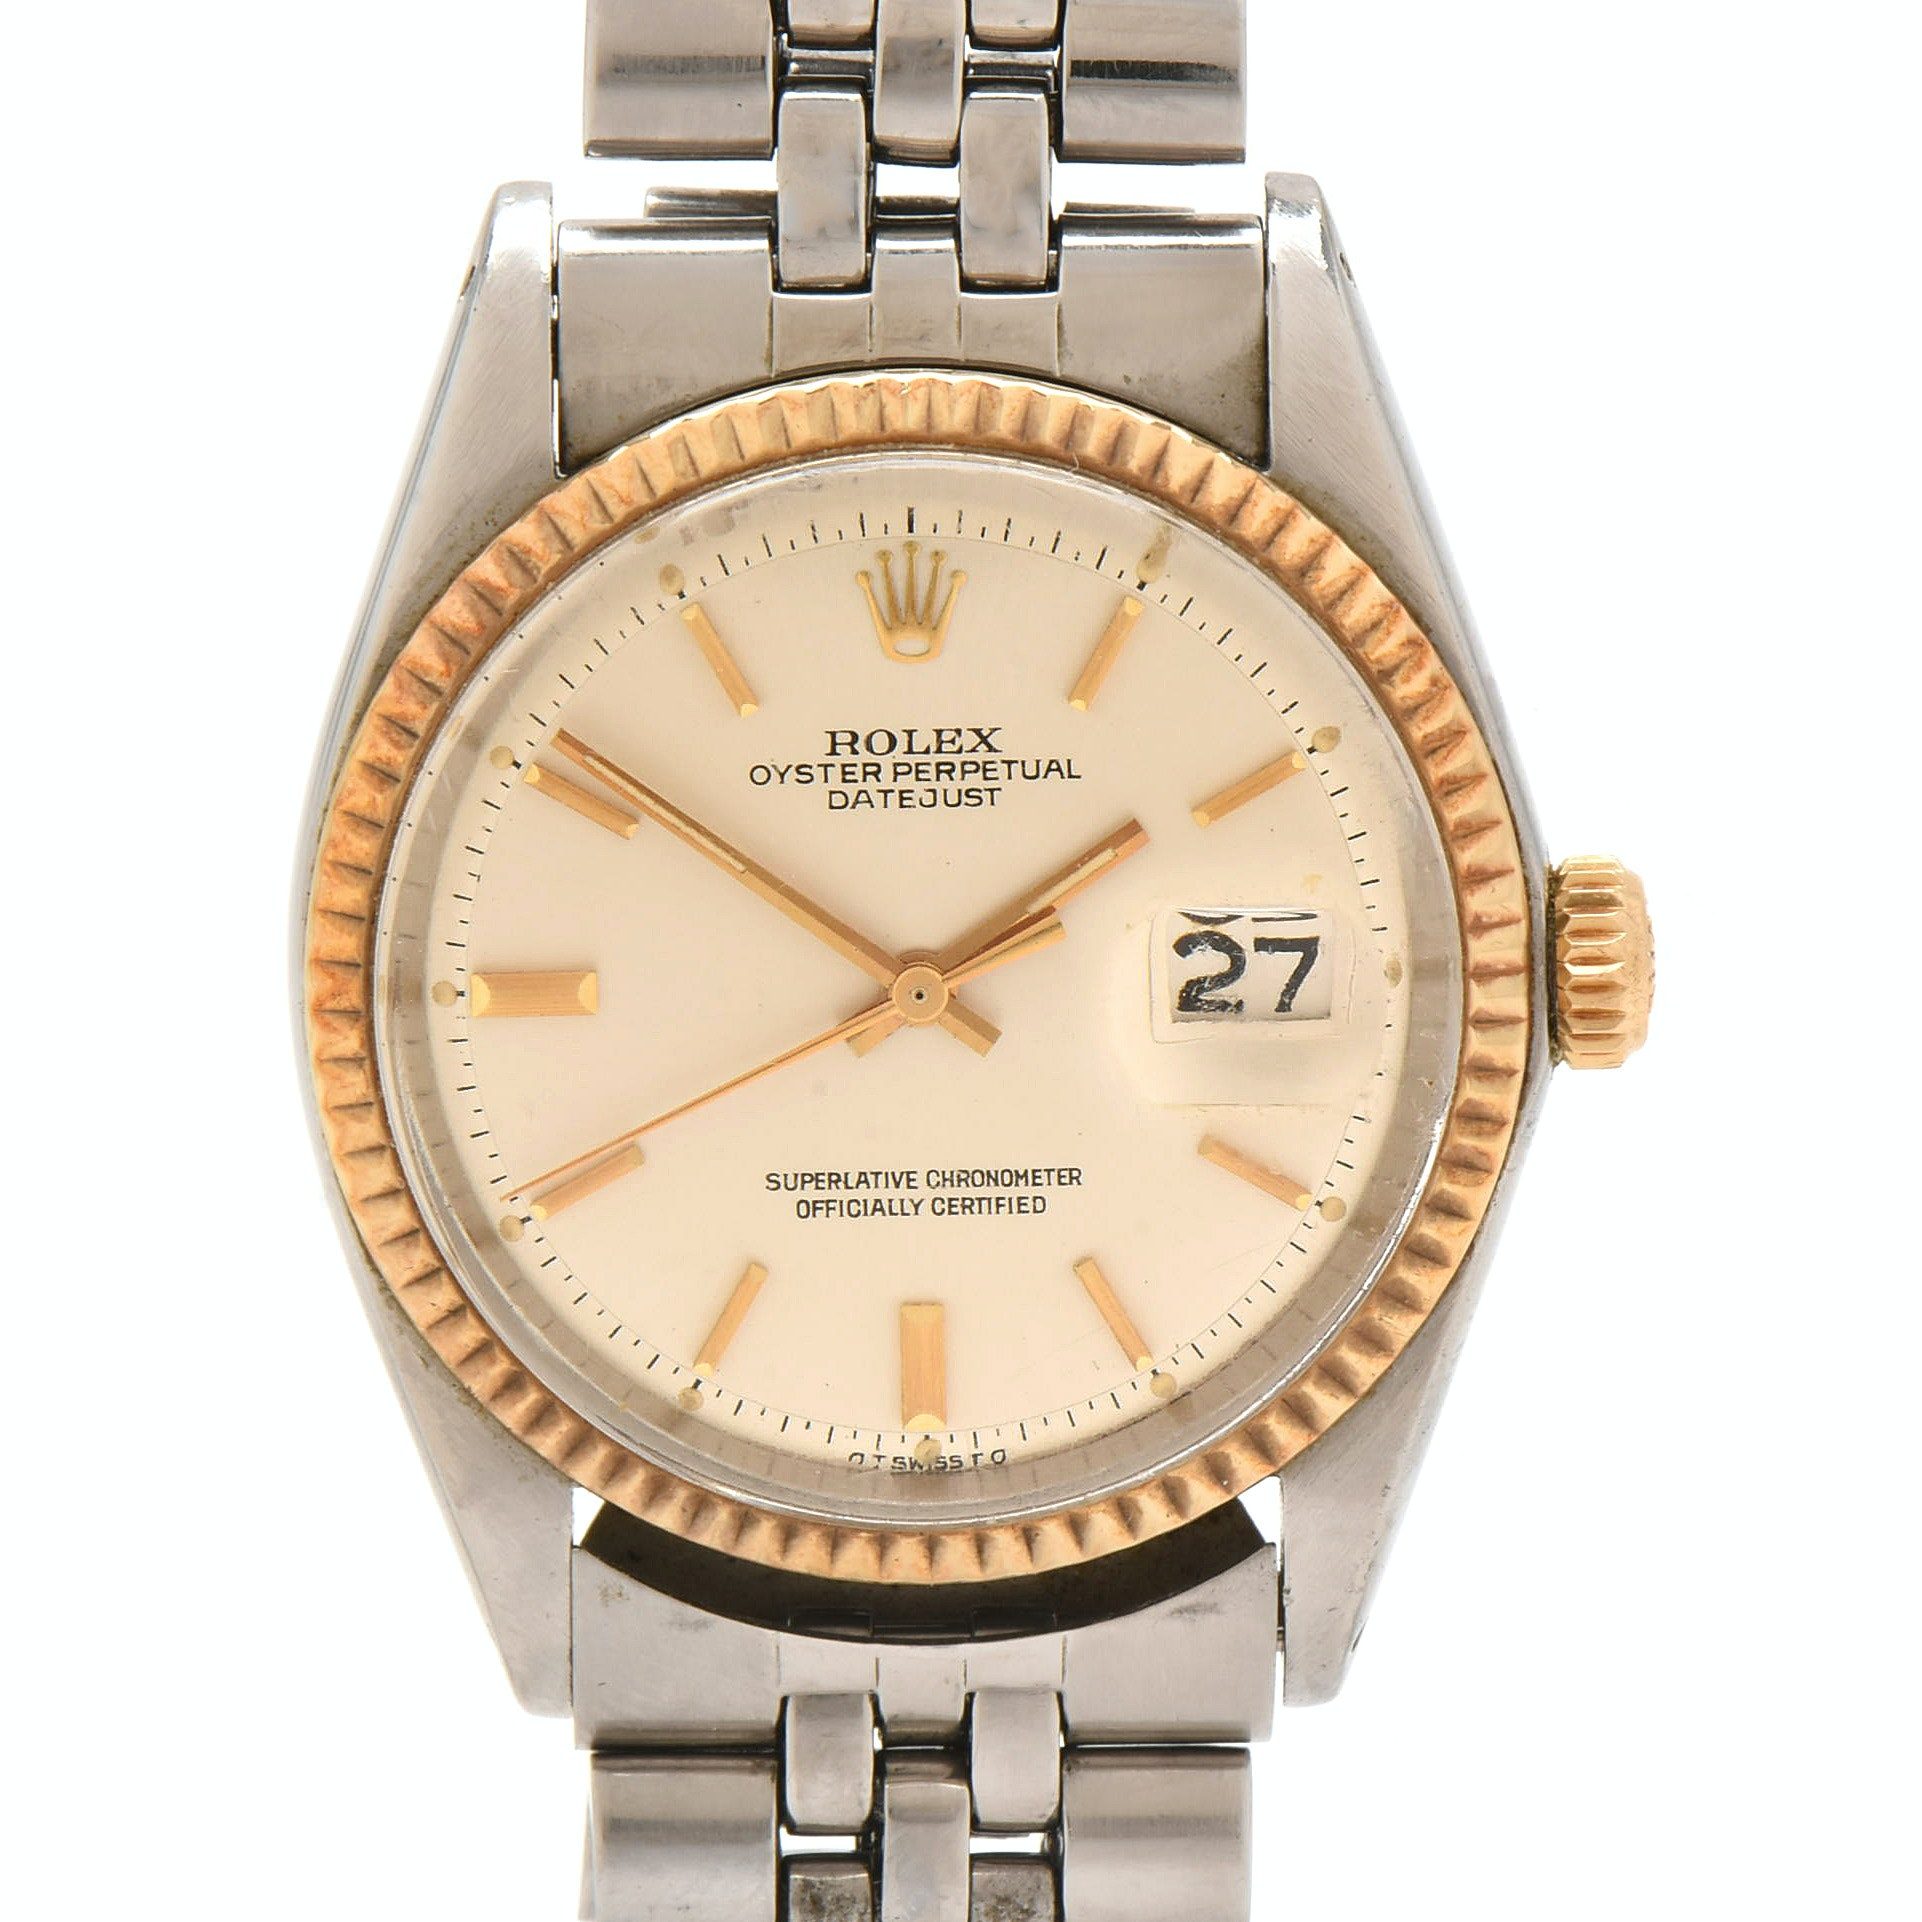 Rolex Datejust 14K Yellow Gold Fluted Bezel and Stainless Steel Wristwatch, 1972